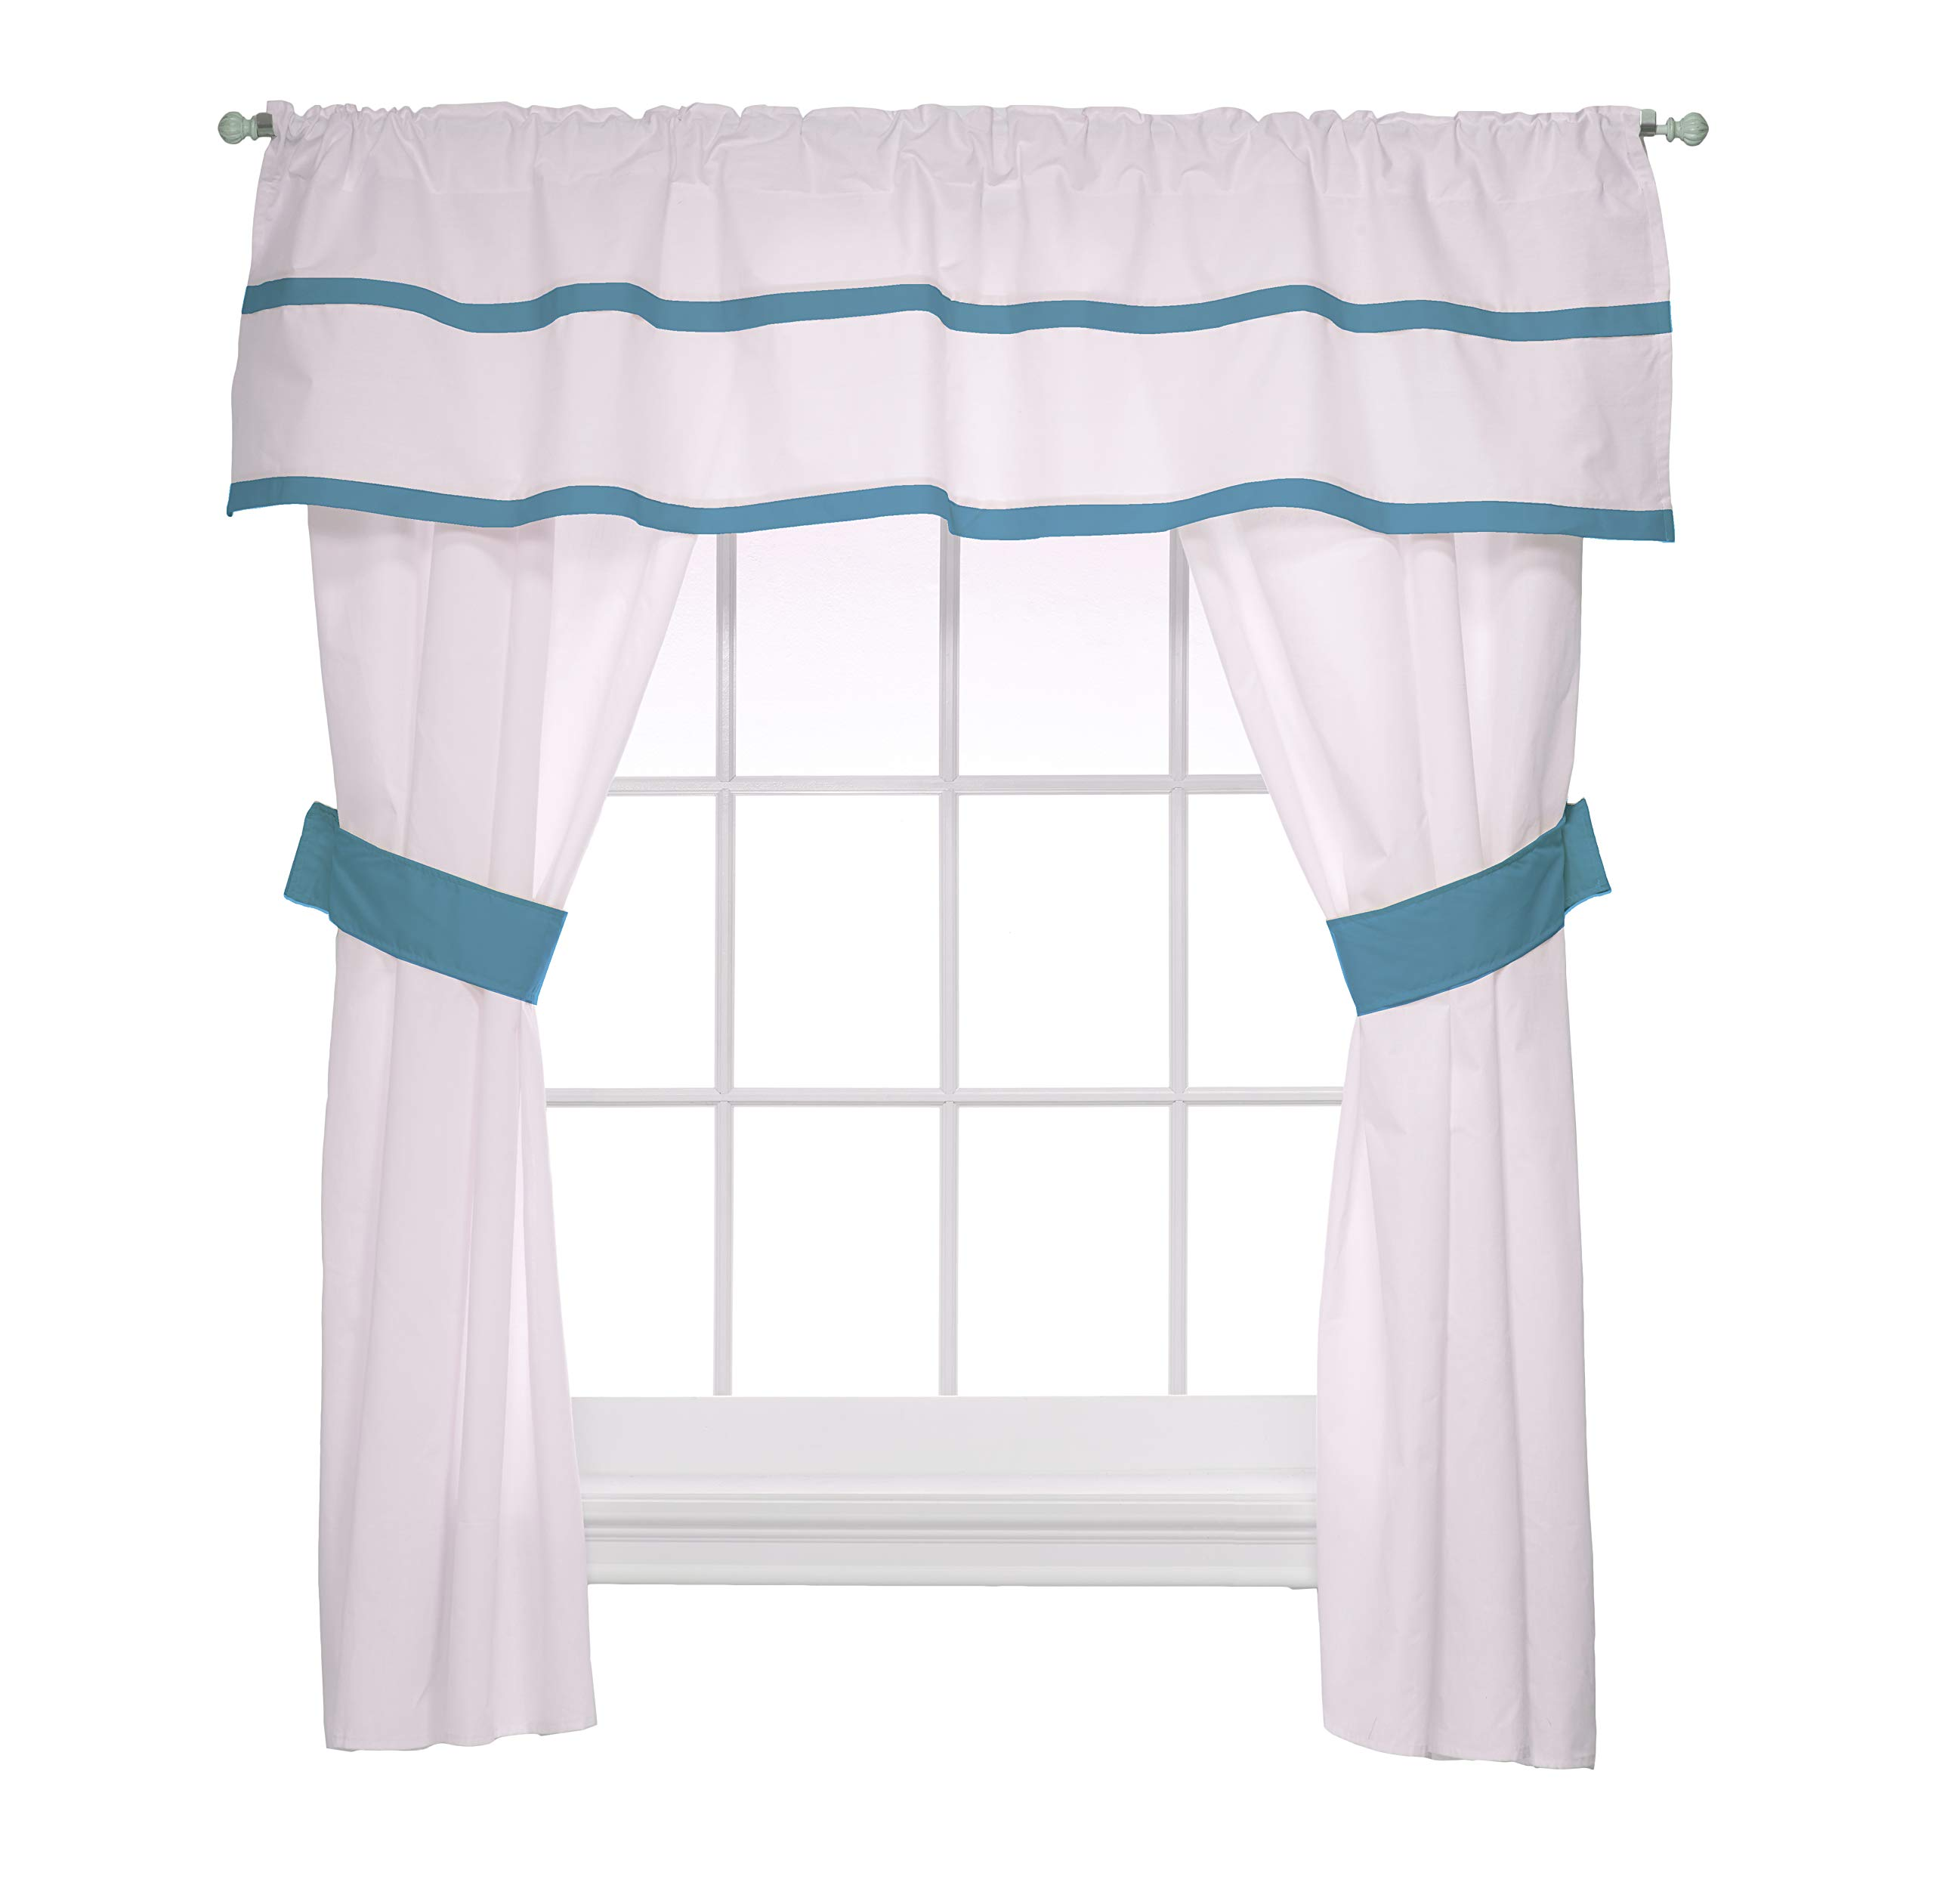 Baby Doll Medallion 5 Piece Window Valance and Curtain Set, Aqua by Baby Doll